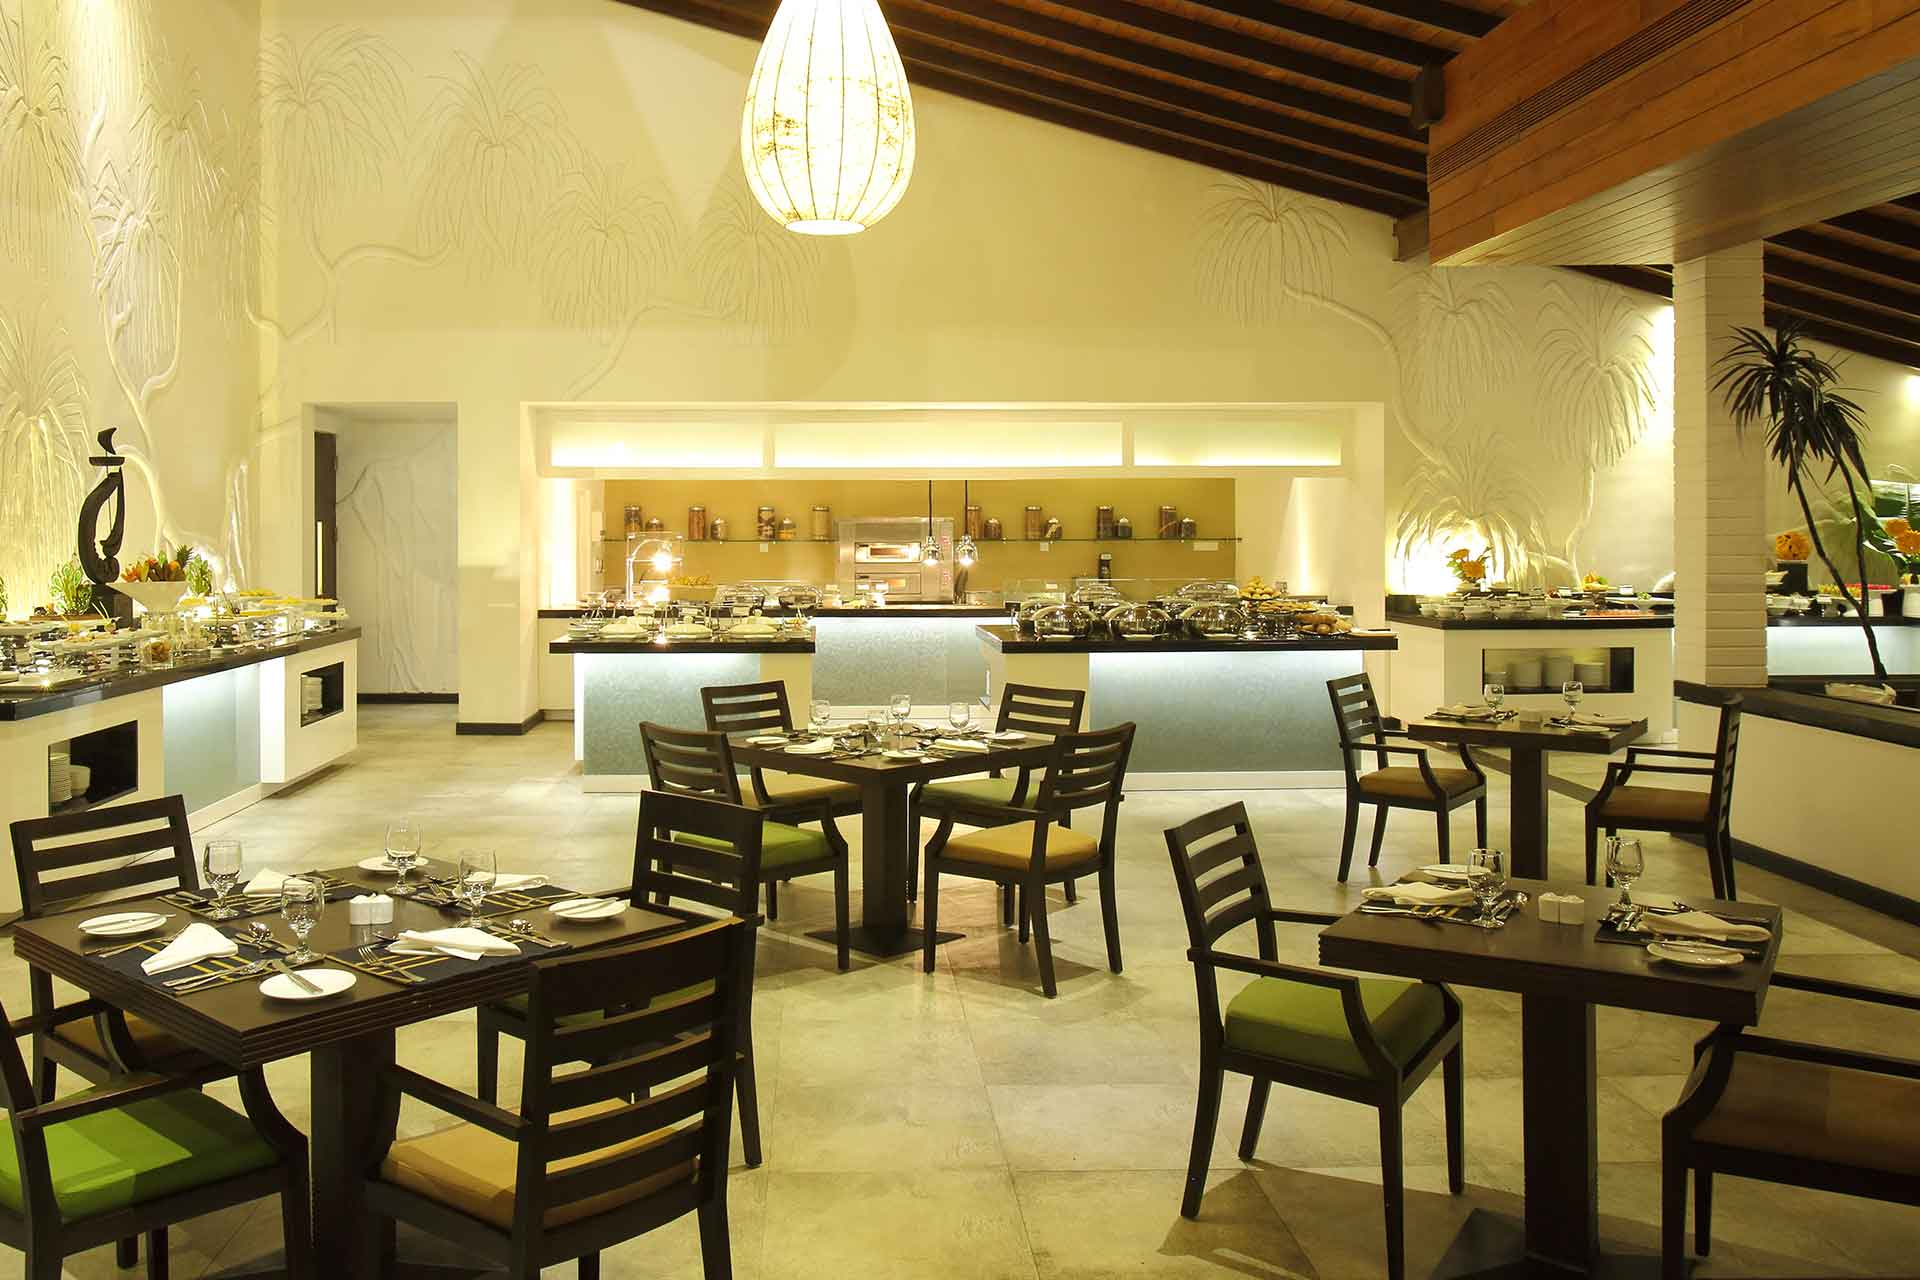 Interior of Mangroves restaurant